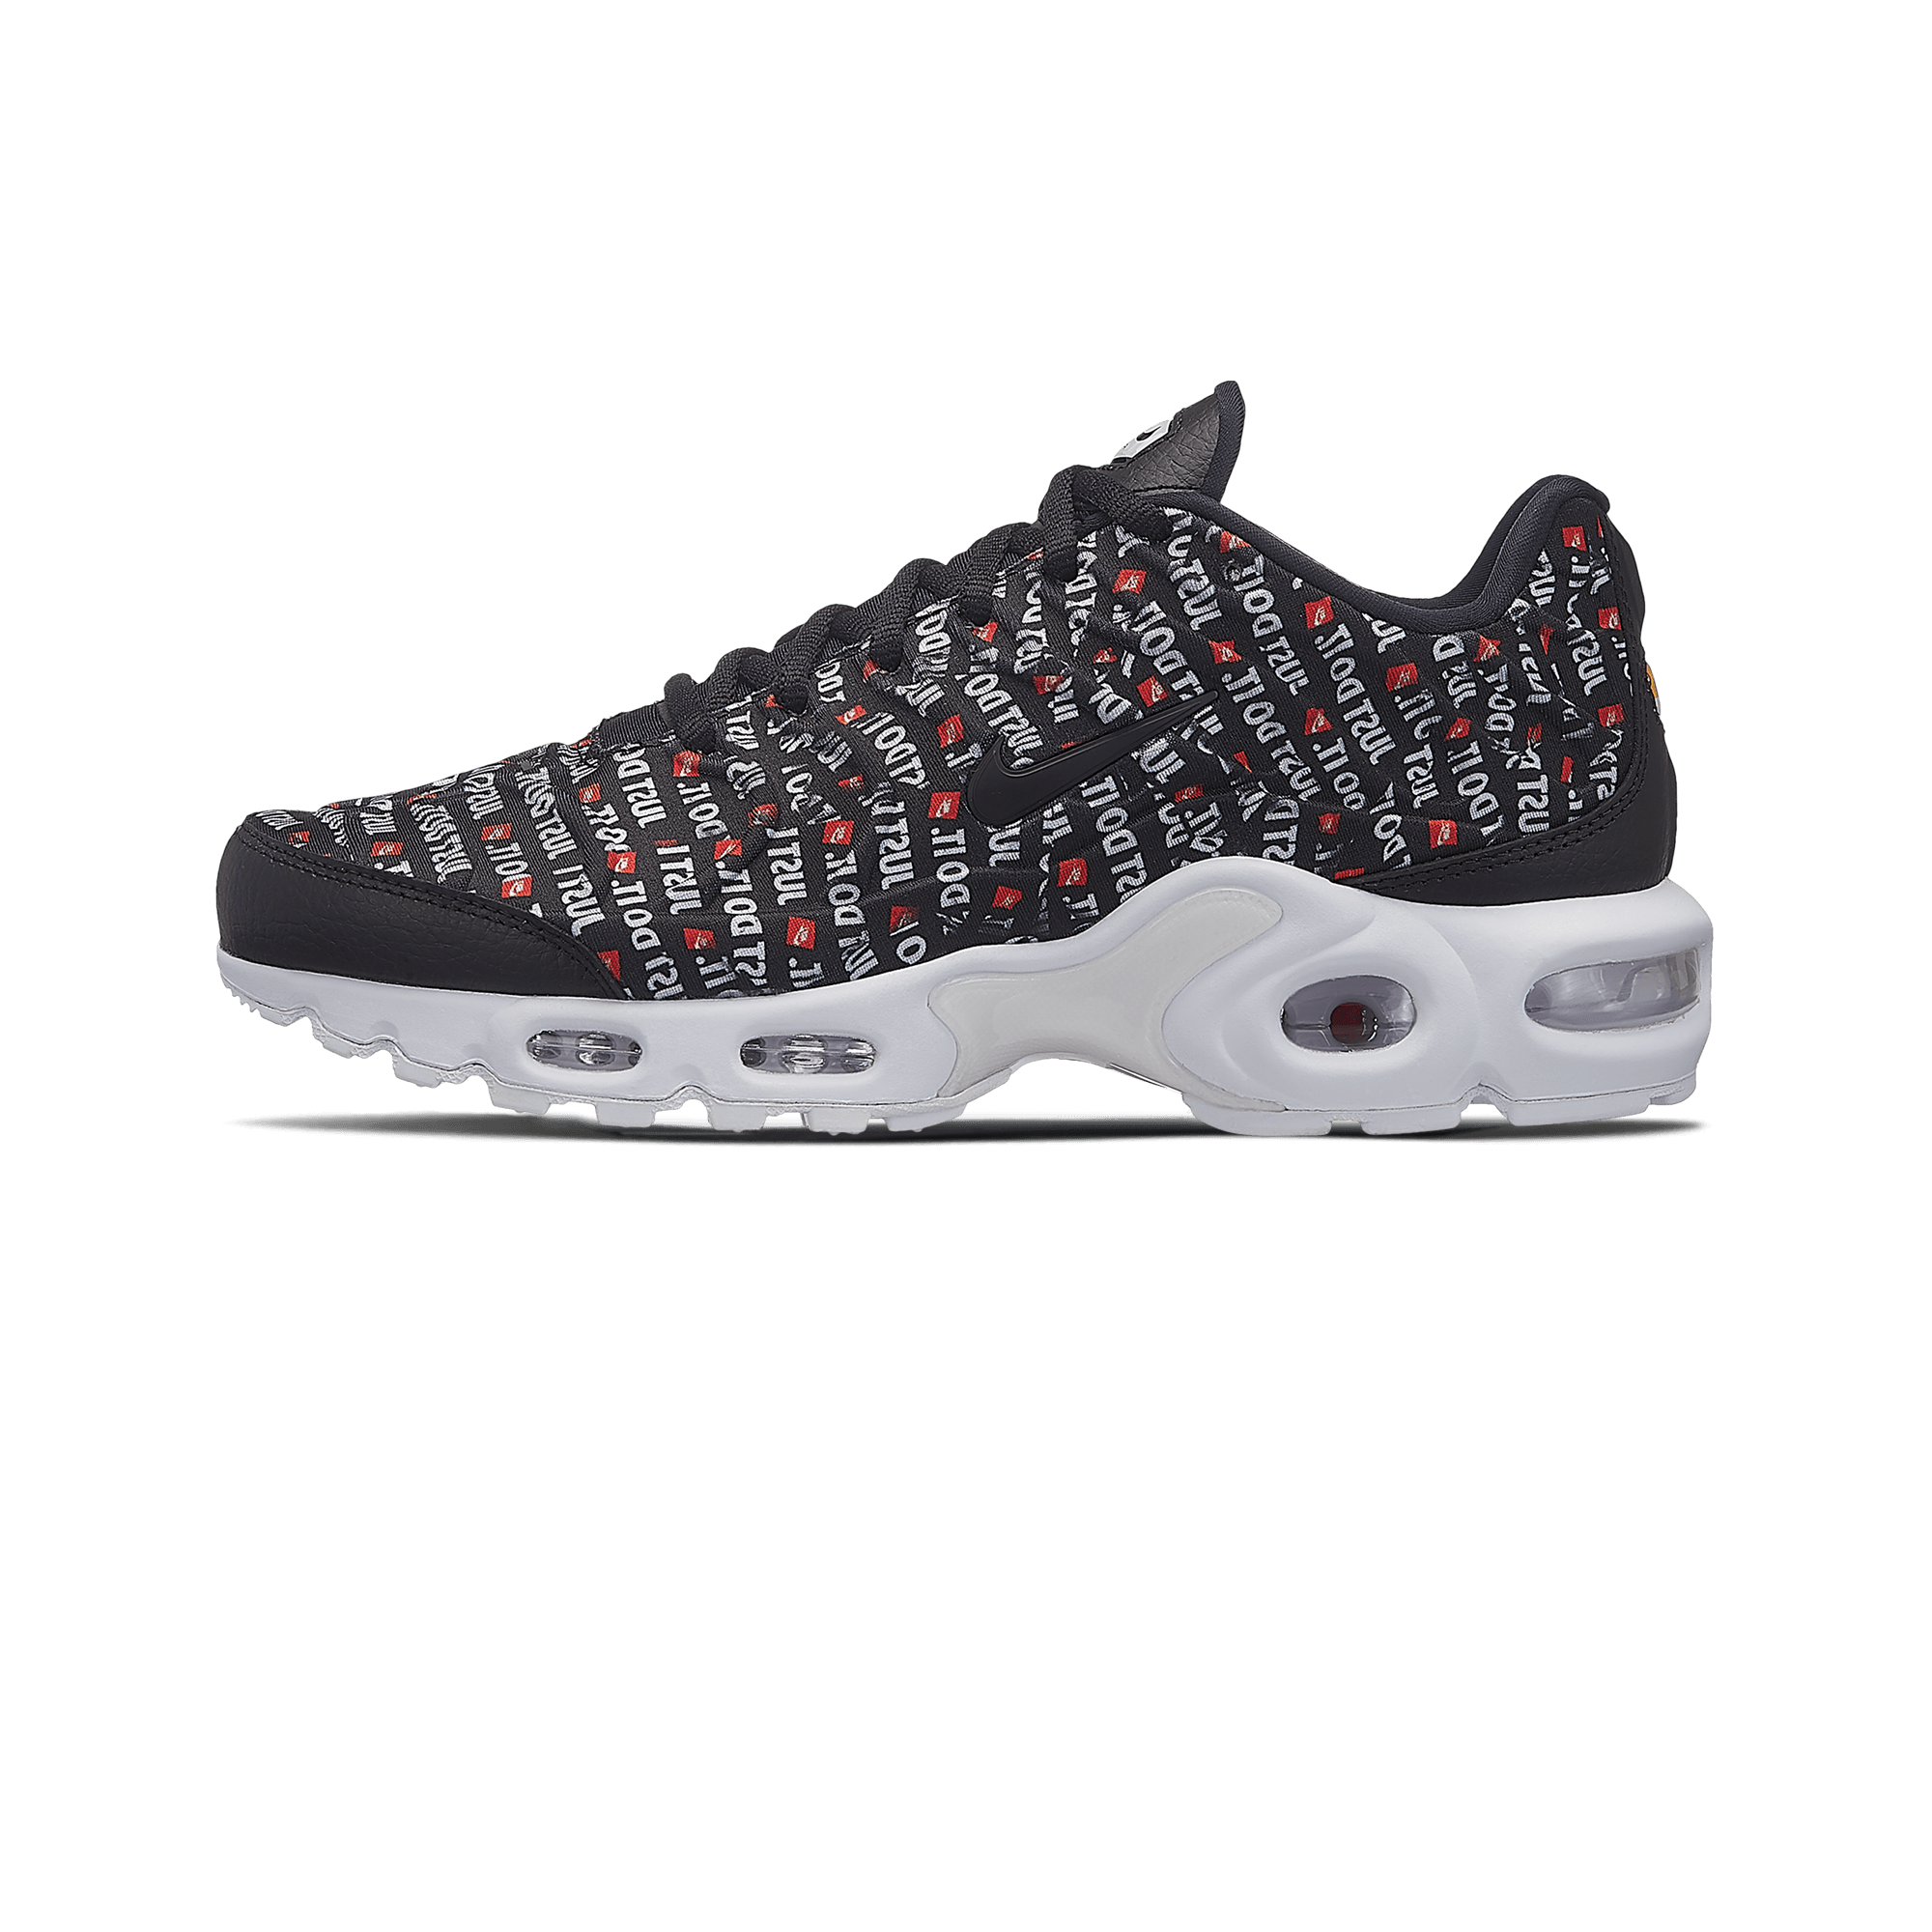 online store 51489 98645 Nike Air Max Plus SE